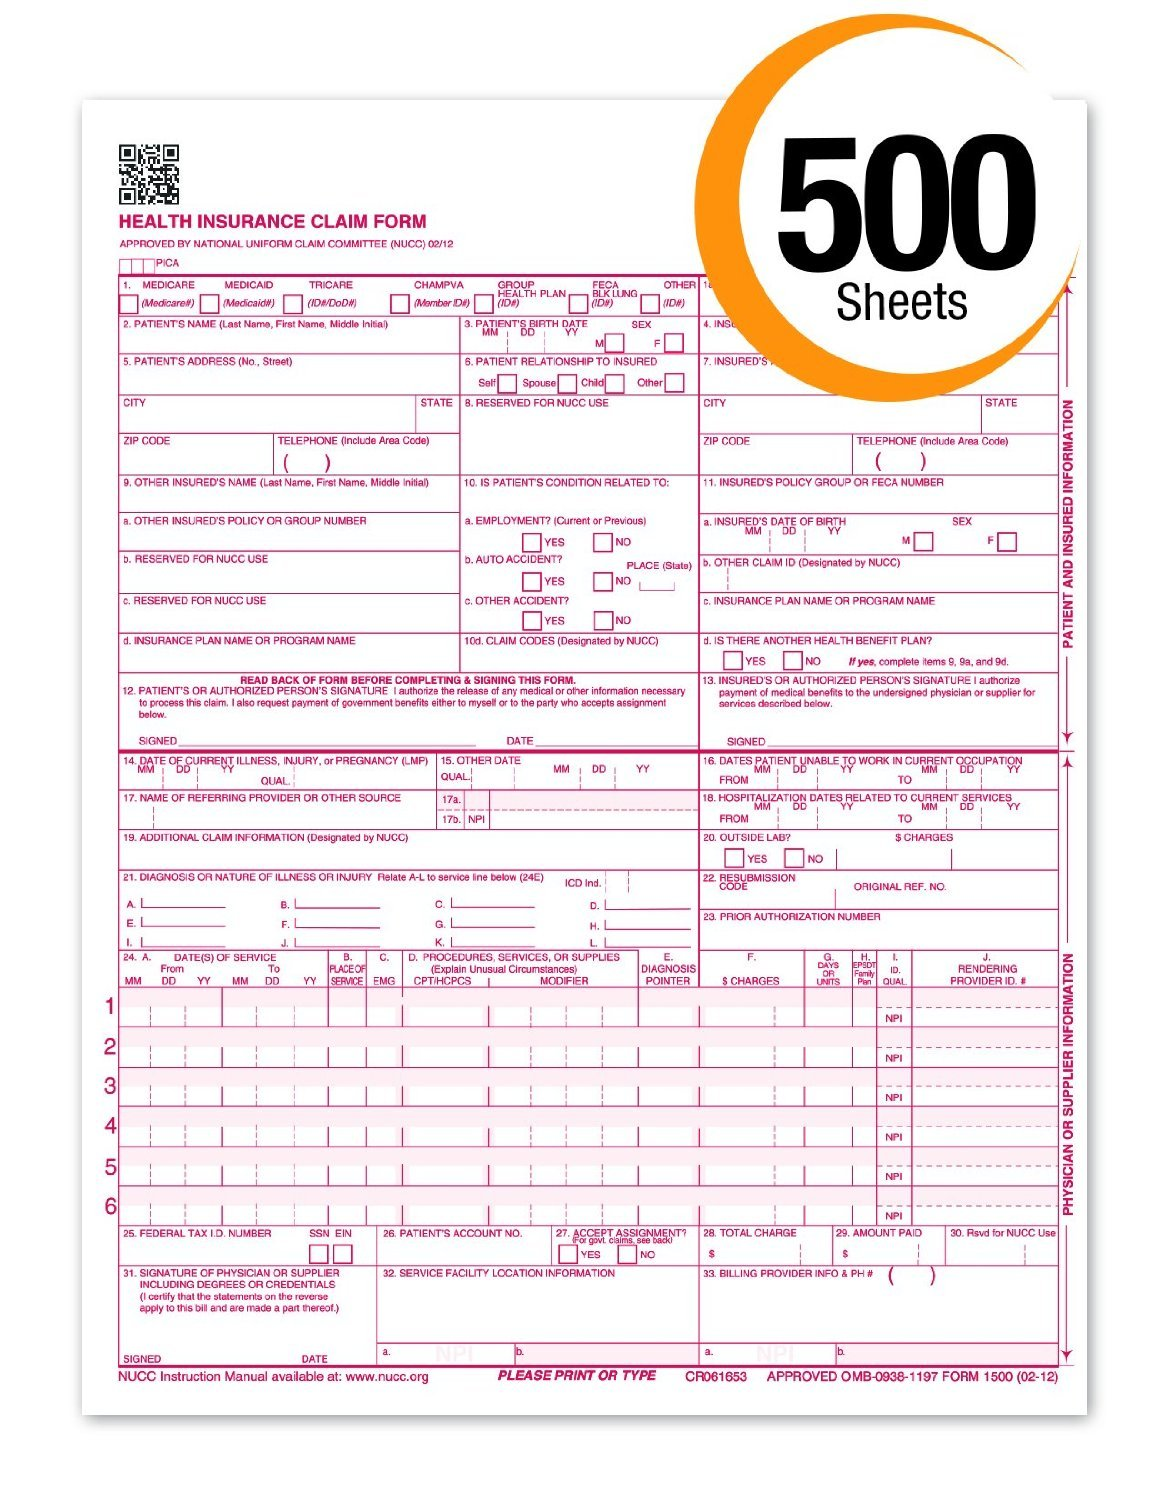 CMS 1500 Claim Forms''NEW'' HCFA (Version 02/12) - Health Insurance, Laser Cut Sheet - 500 Sheets